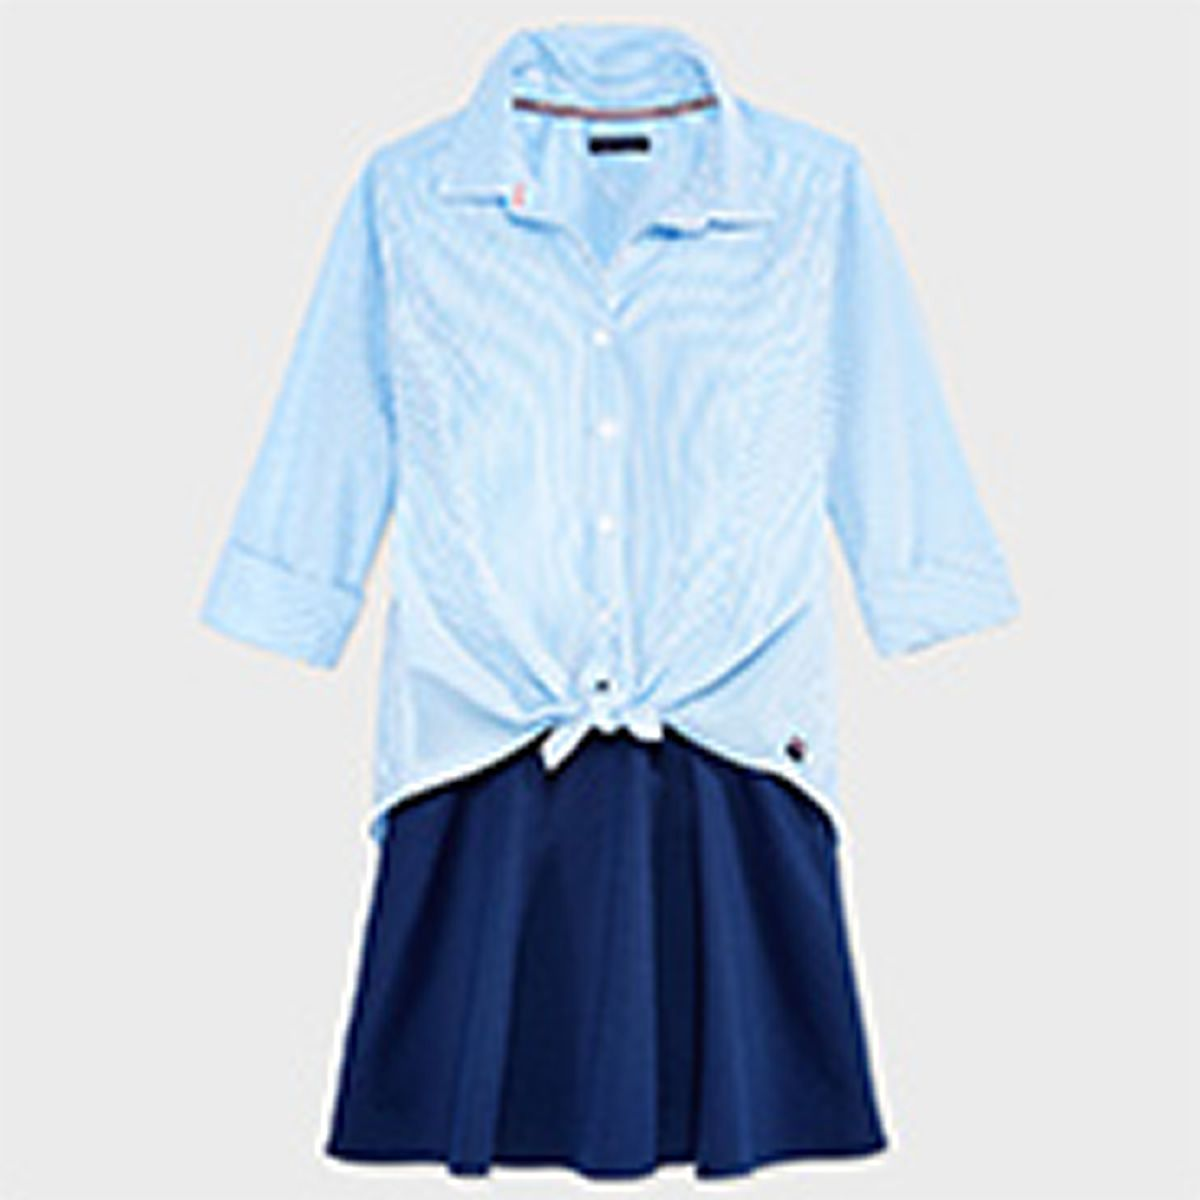 81574ef2027 School Uniforms - Macy s